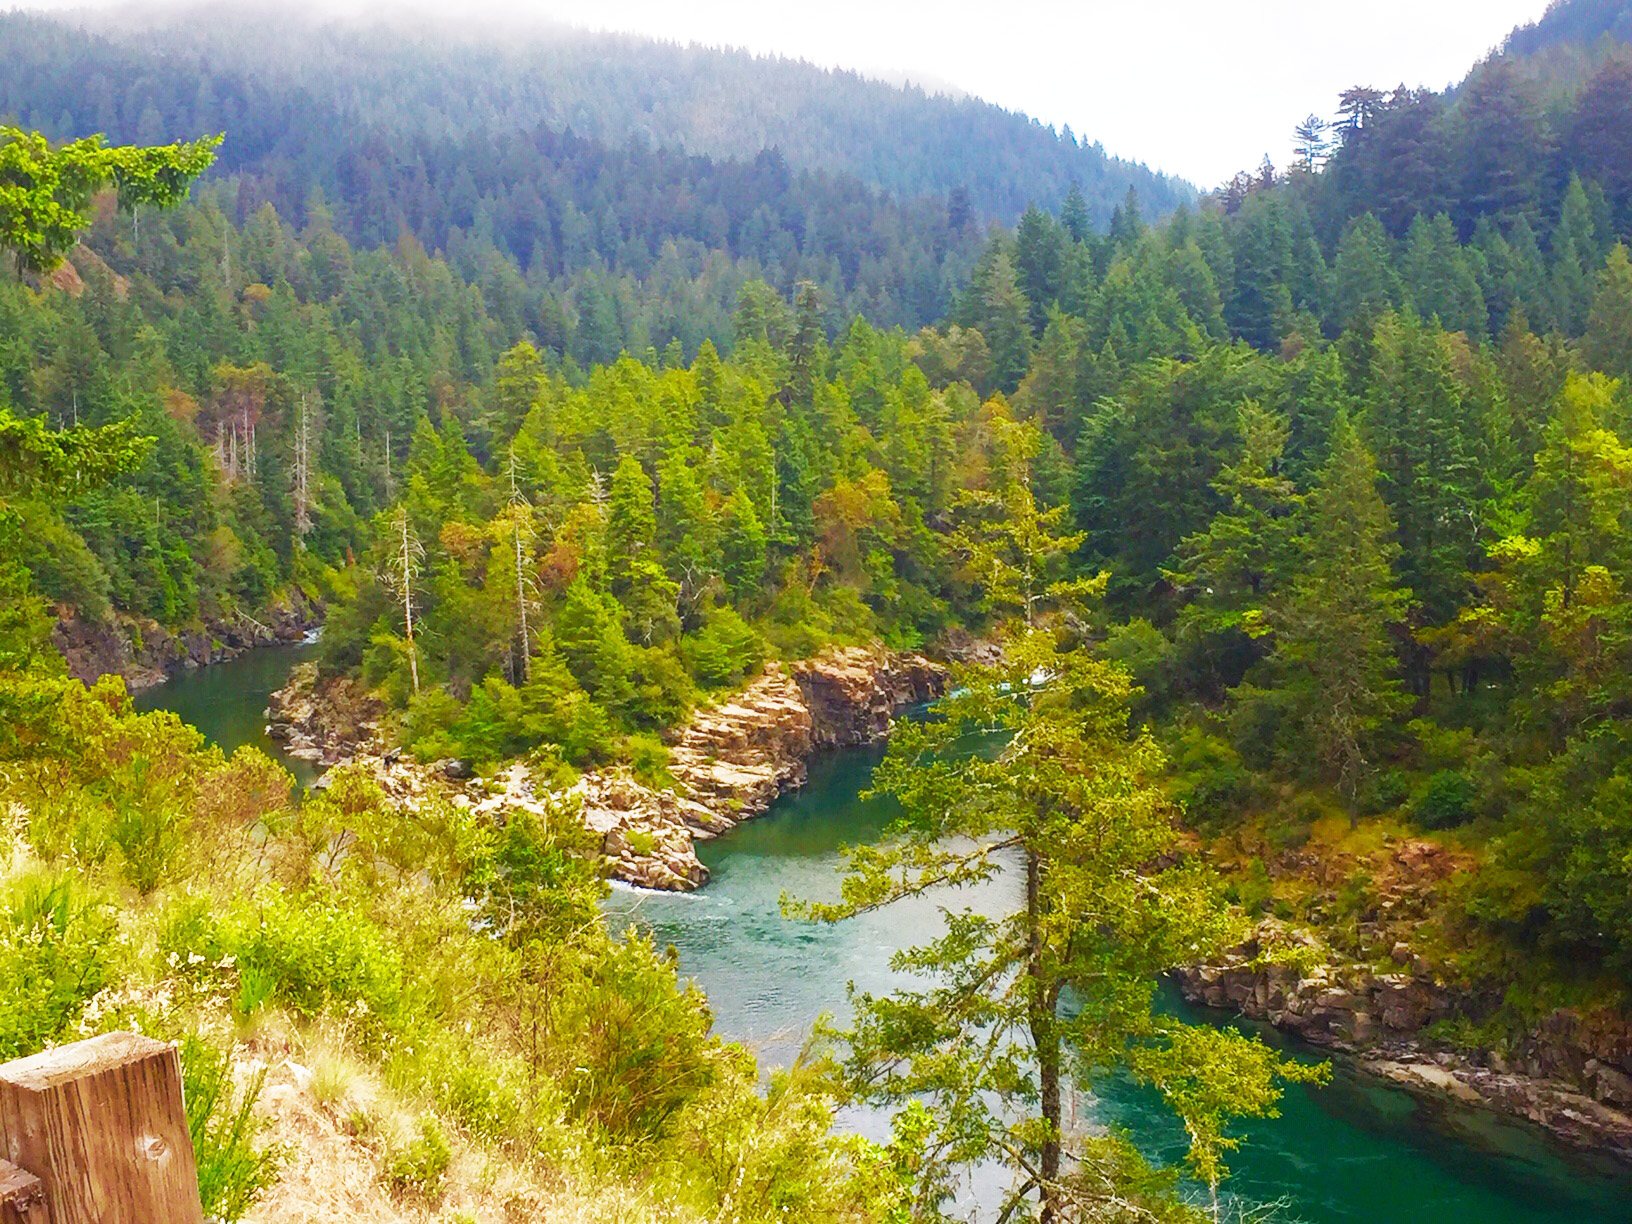 Looking down at the Smith River and surrounding forest from up above.